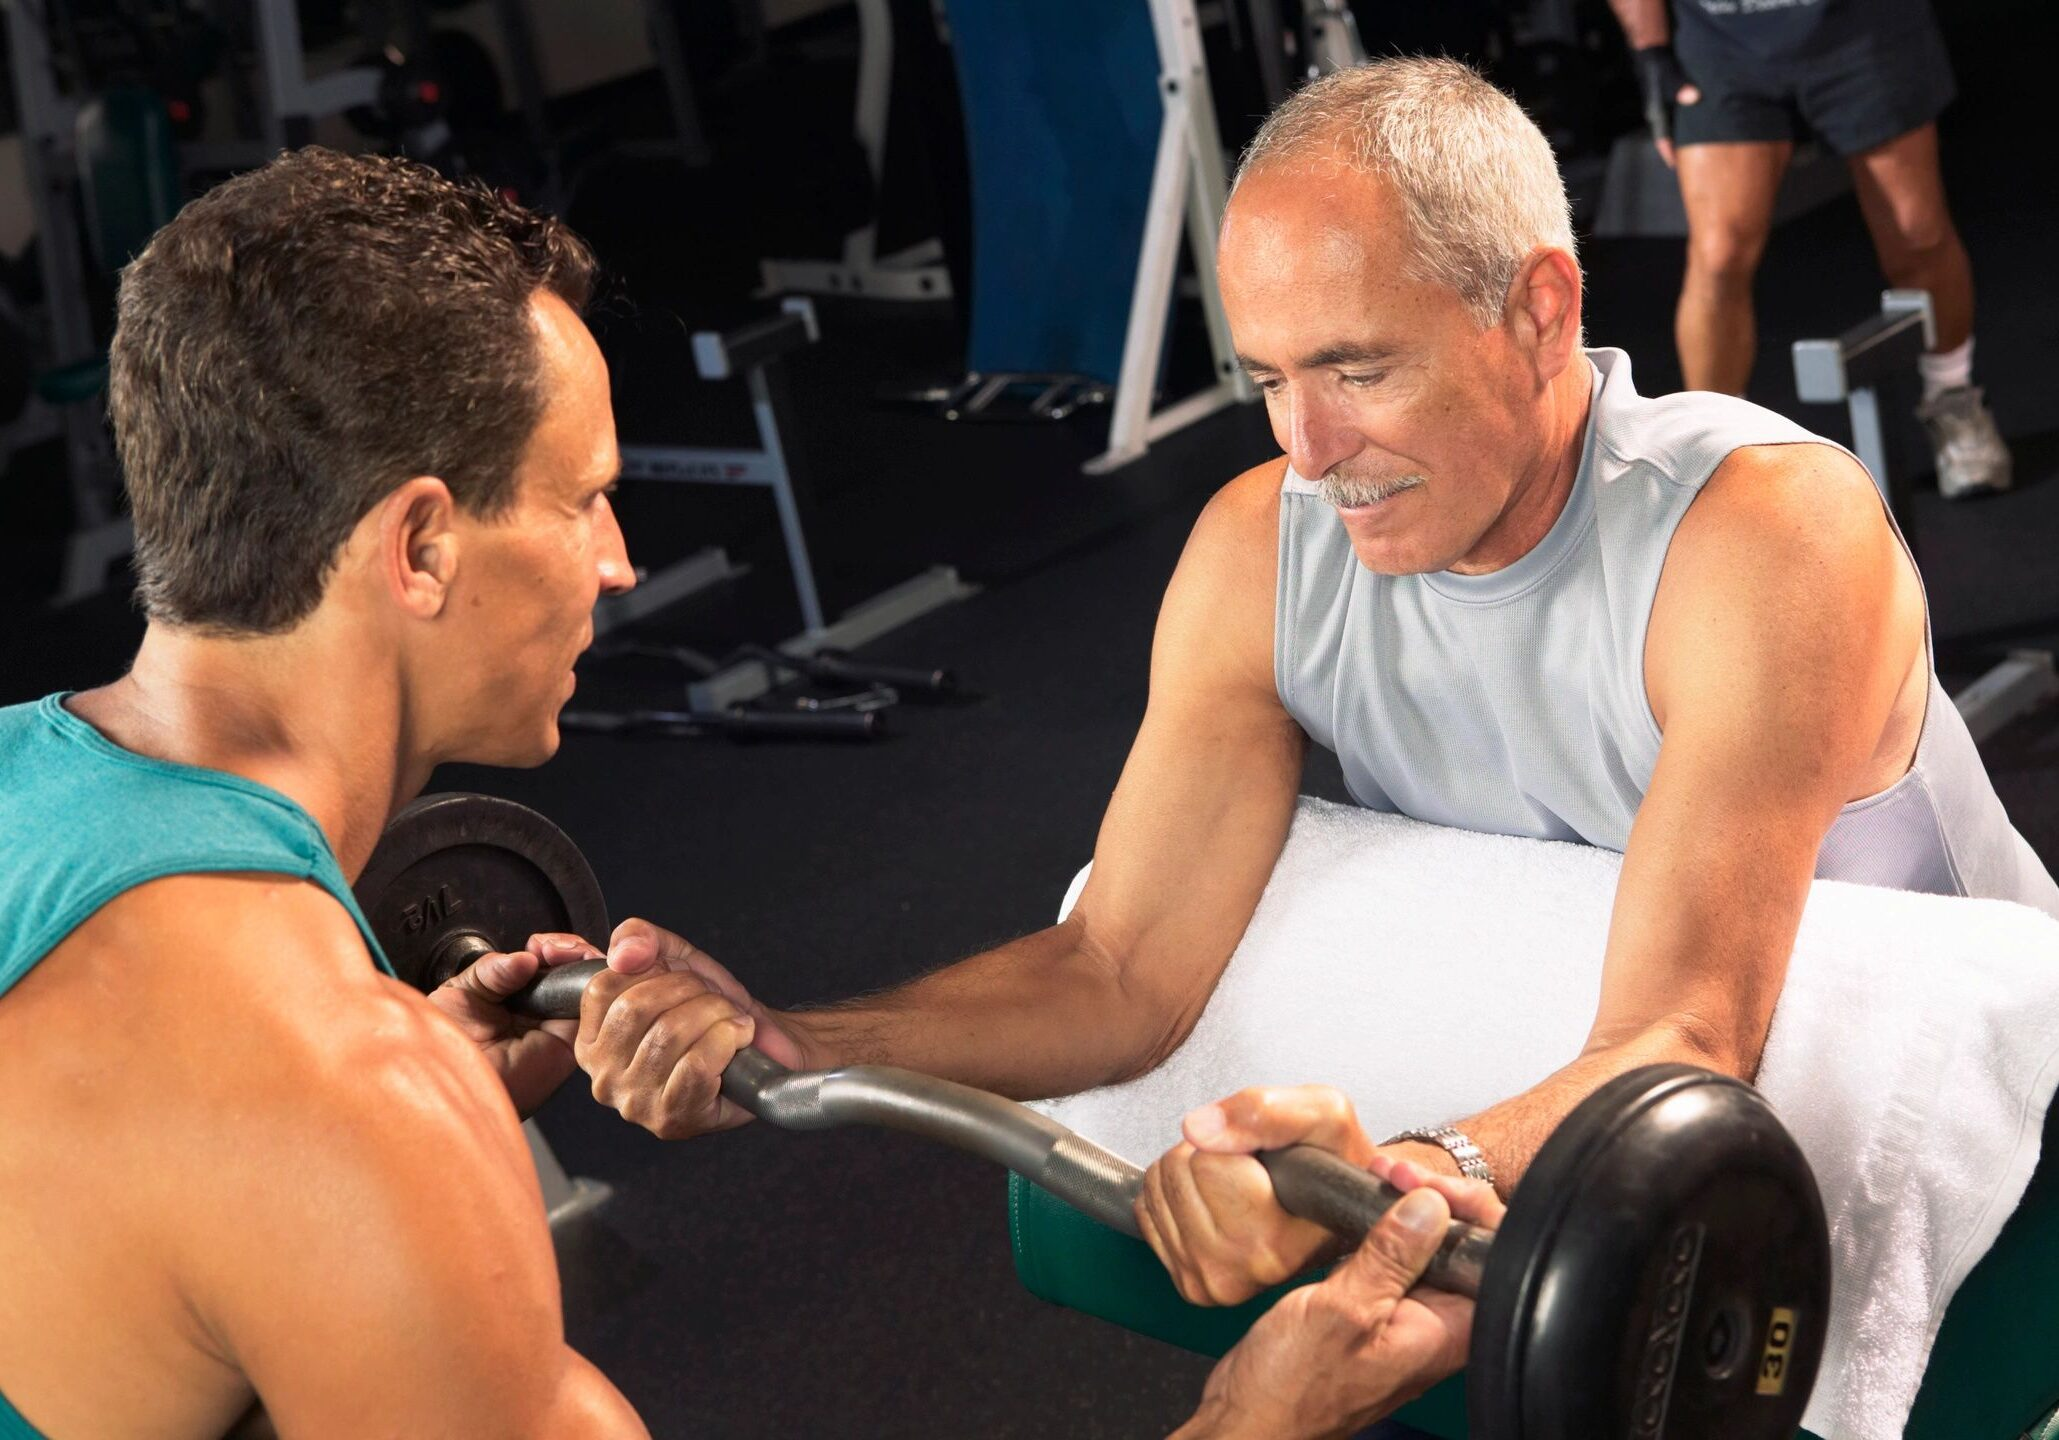 Studies Show Strength Training in later years supports healthy brain volume and cognitive function